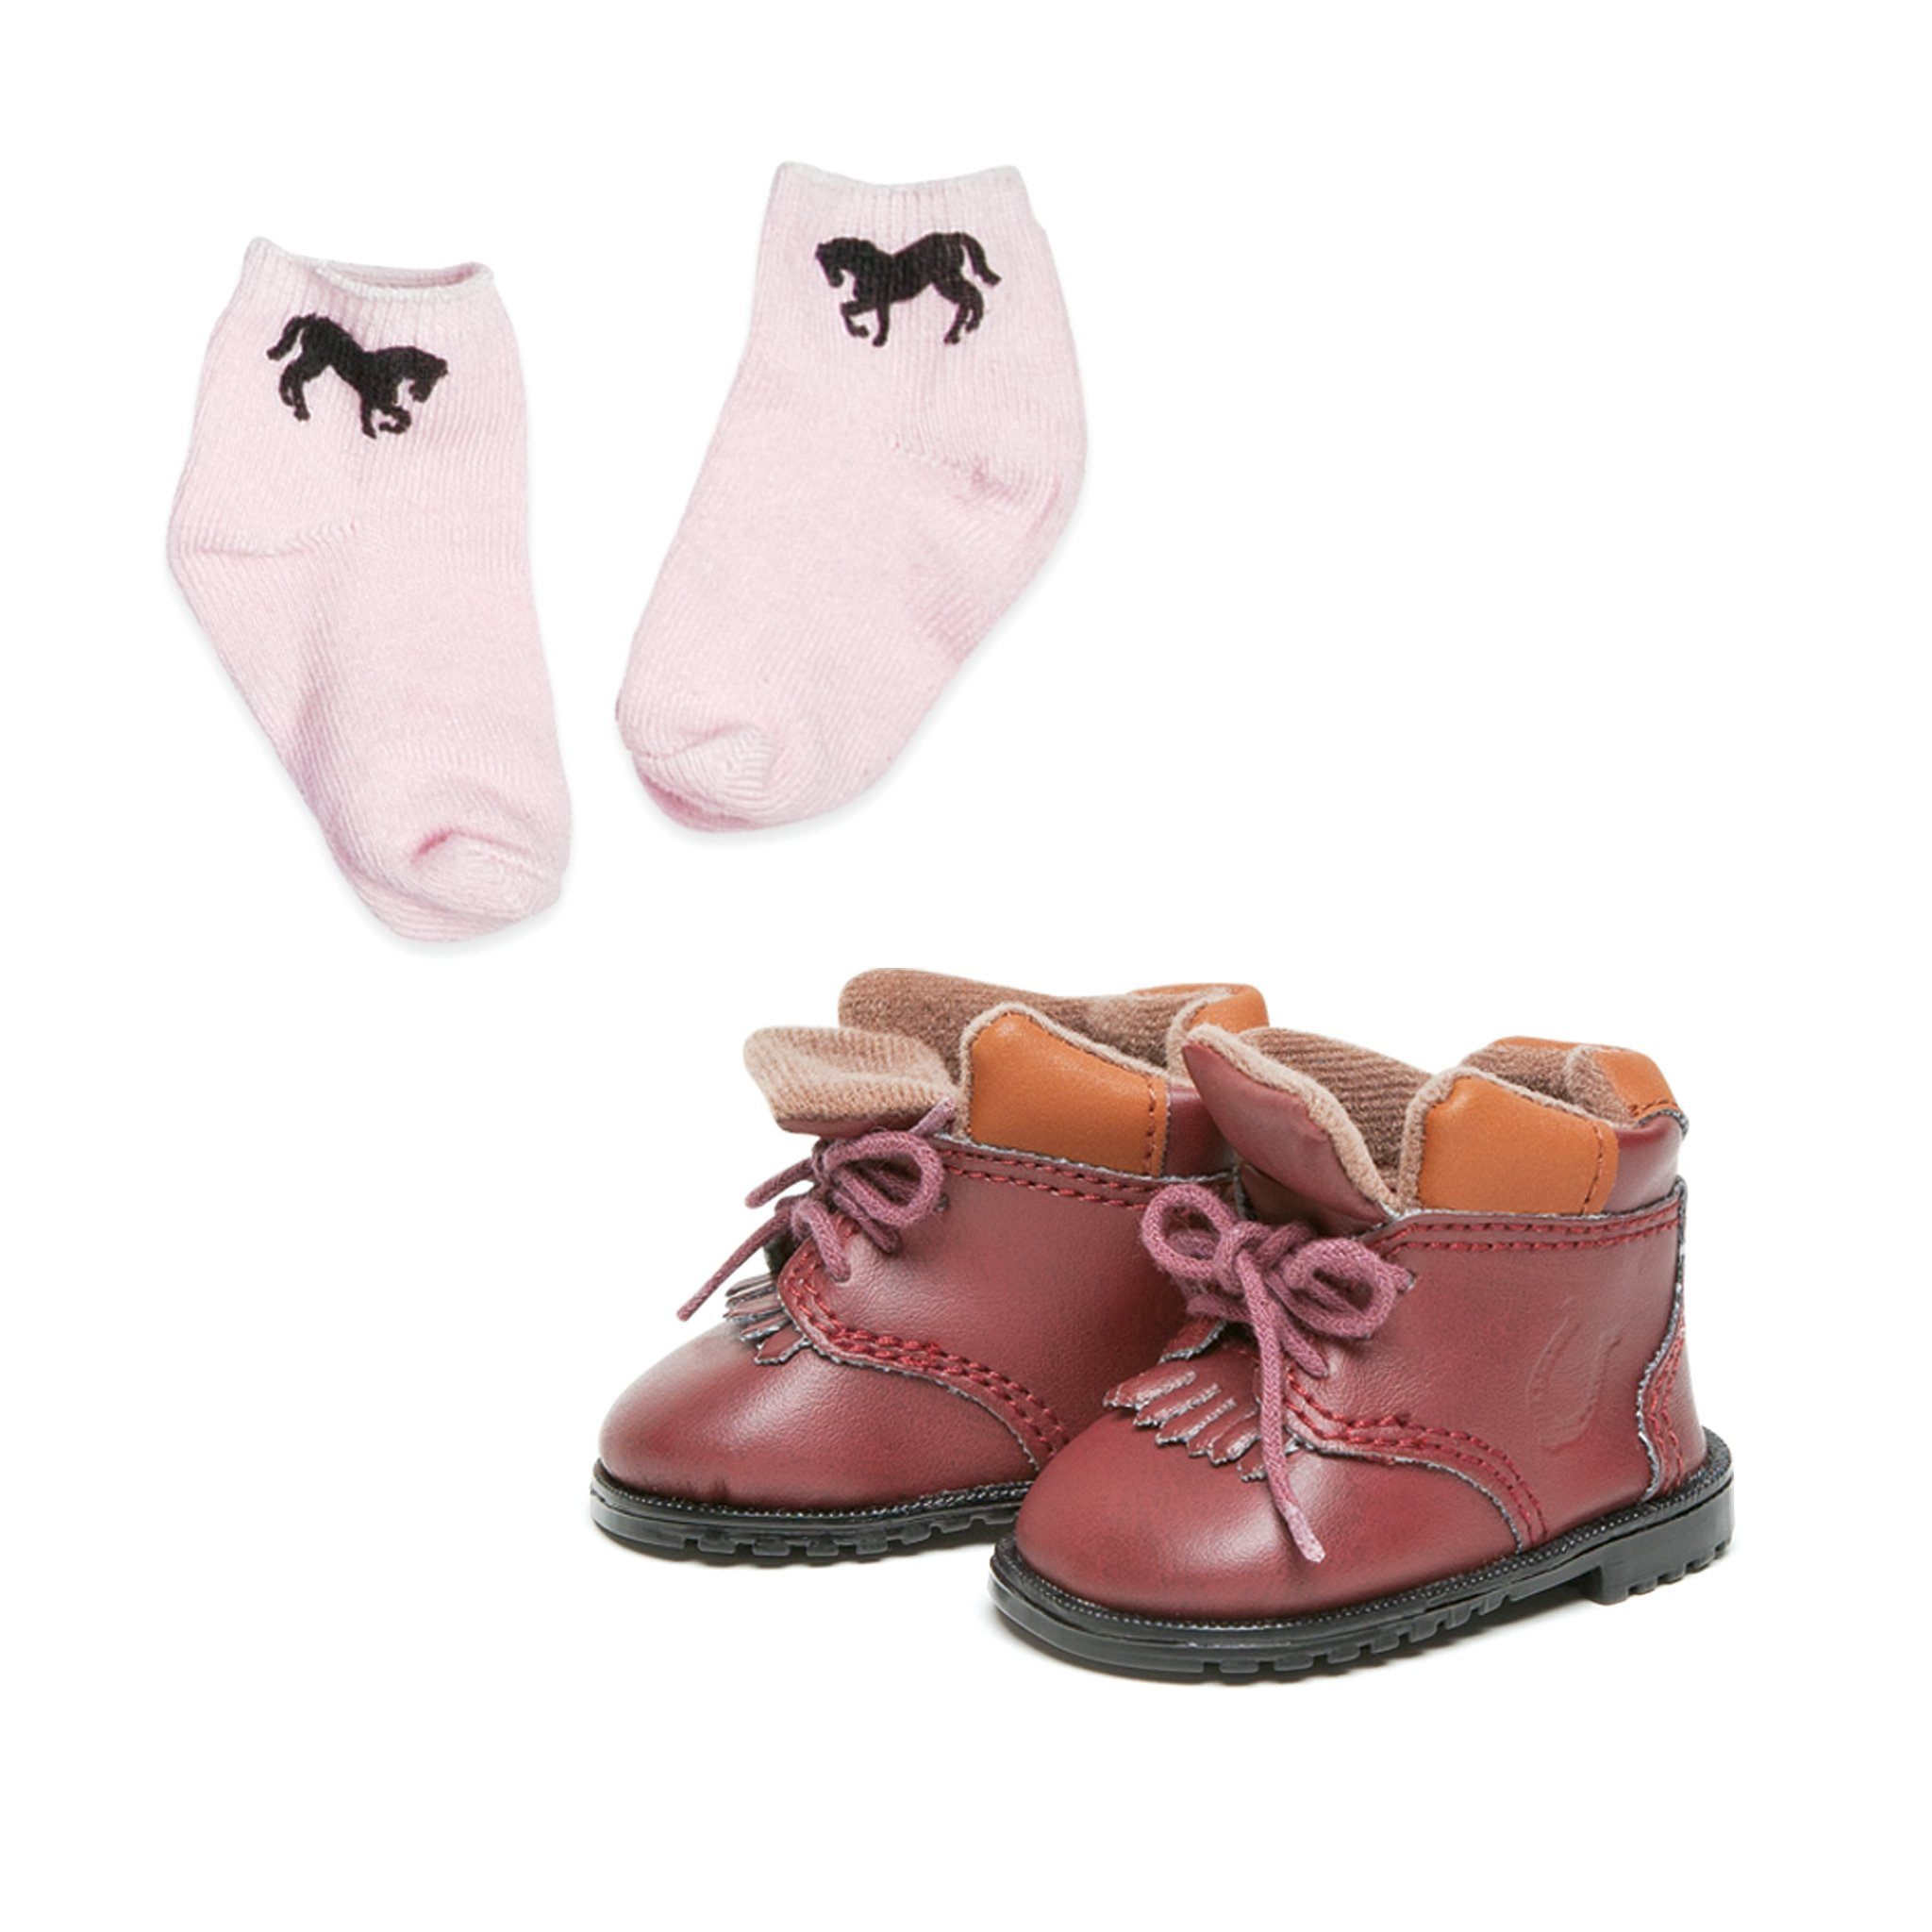 Western riding ankle boots and pink socks with horse design, fots all 18 inch dolls.